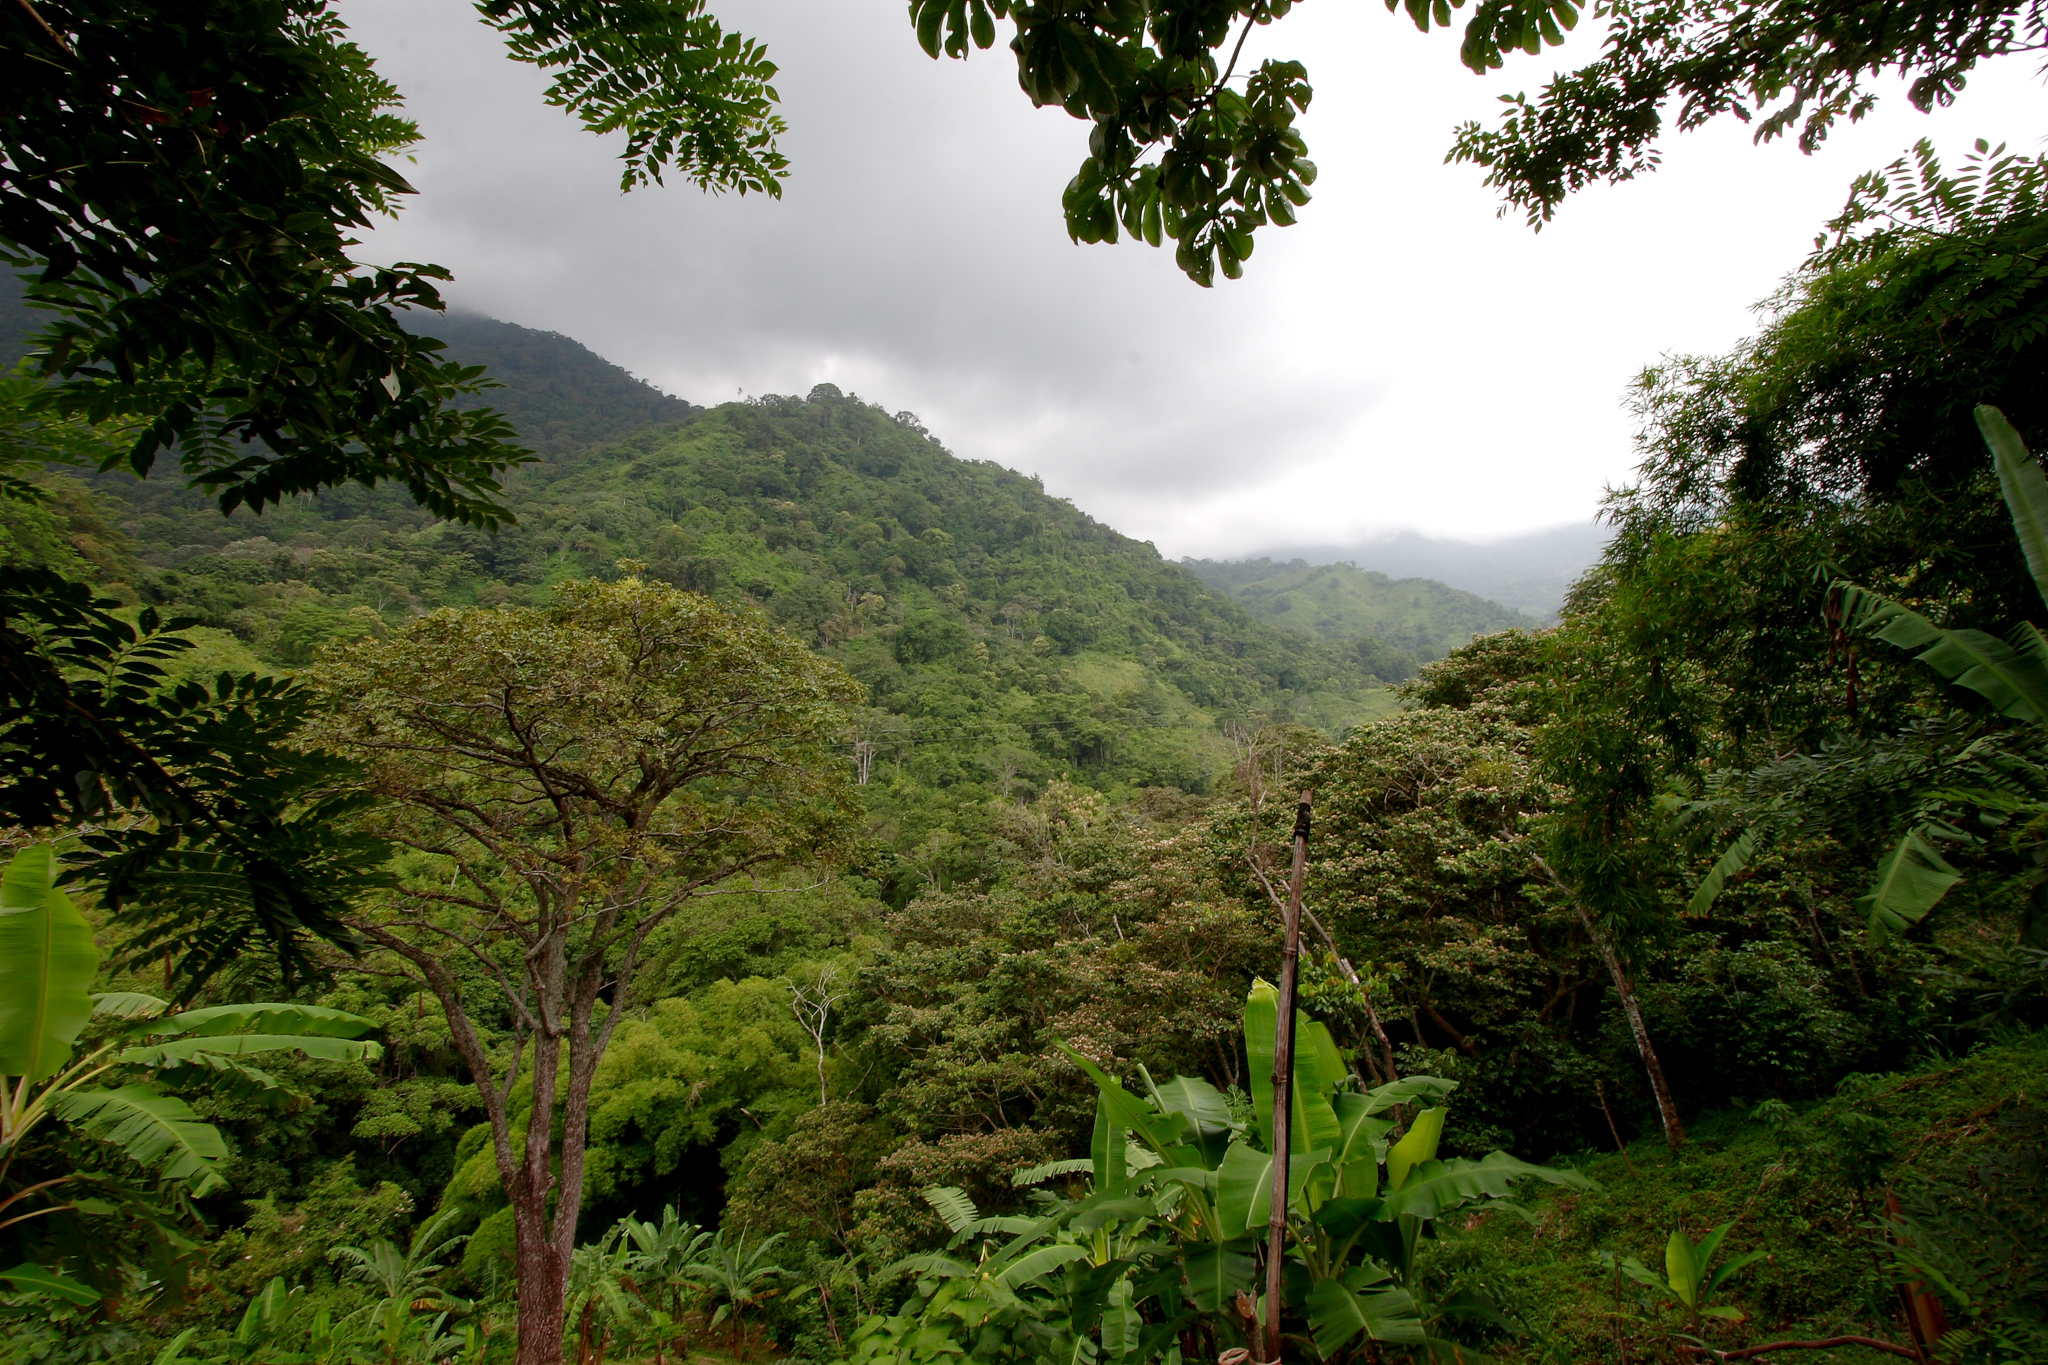 The Sierra Nevada Mountains in the Magdalena region of northern Colombia. Photograph by Mark Rowland